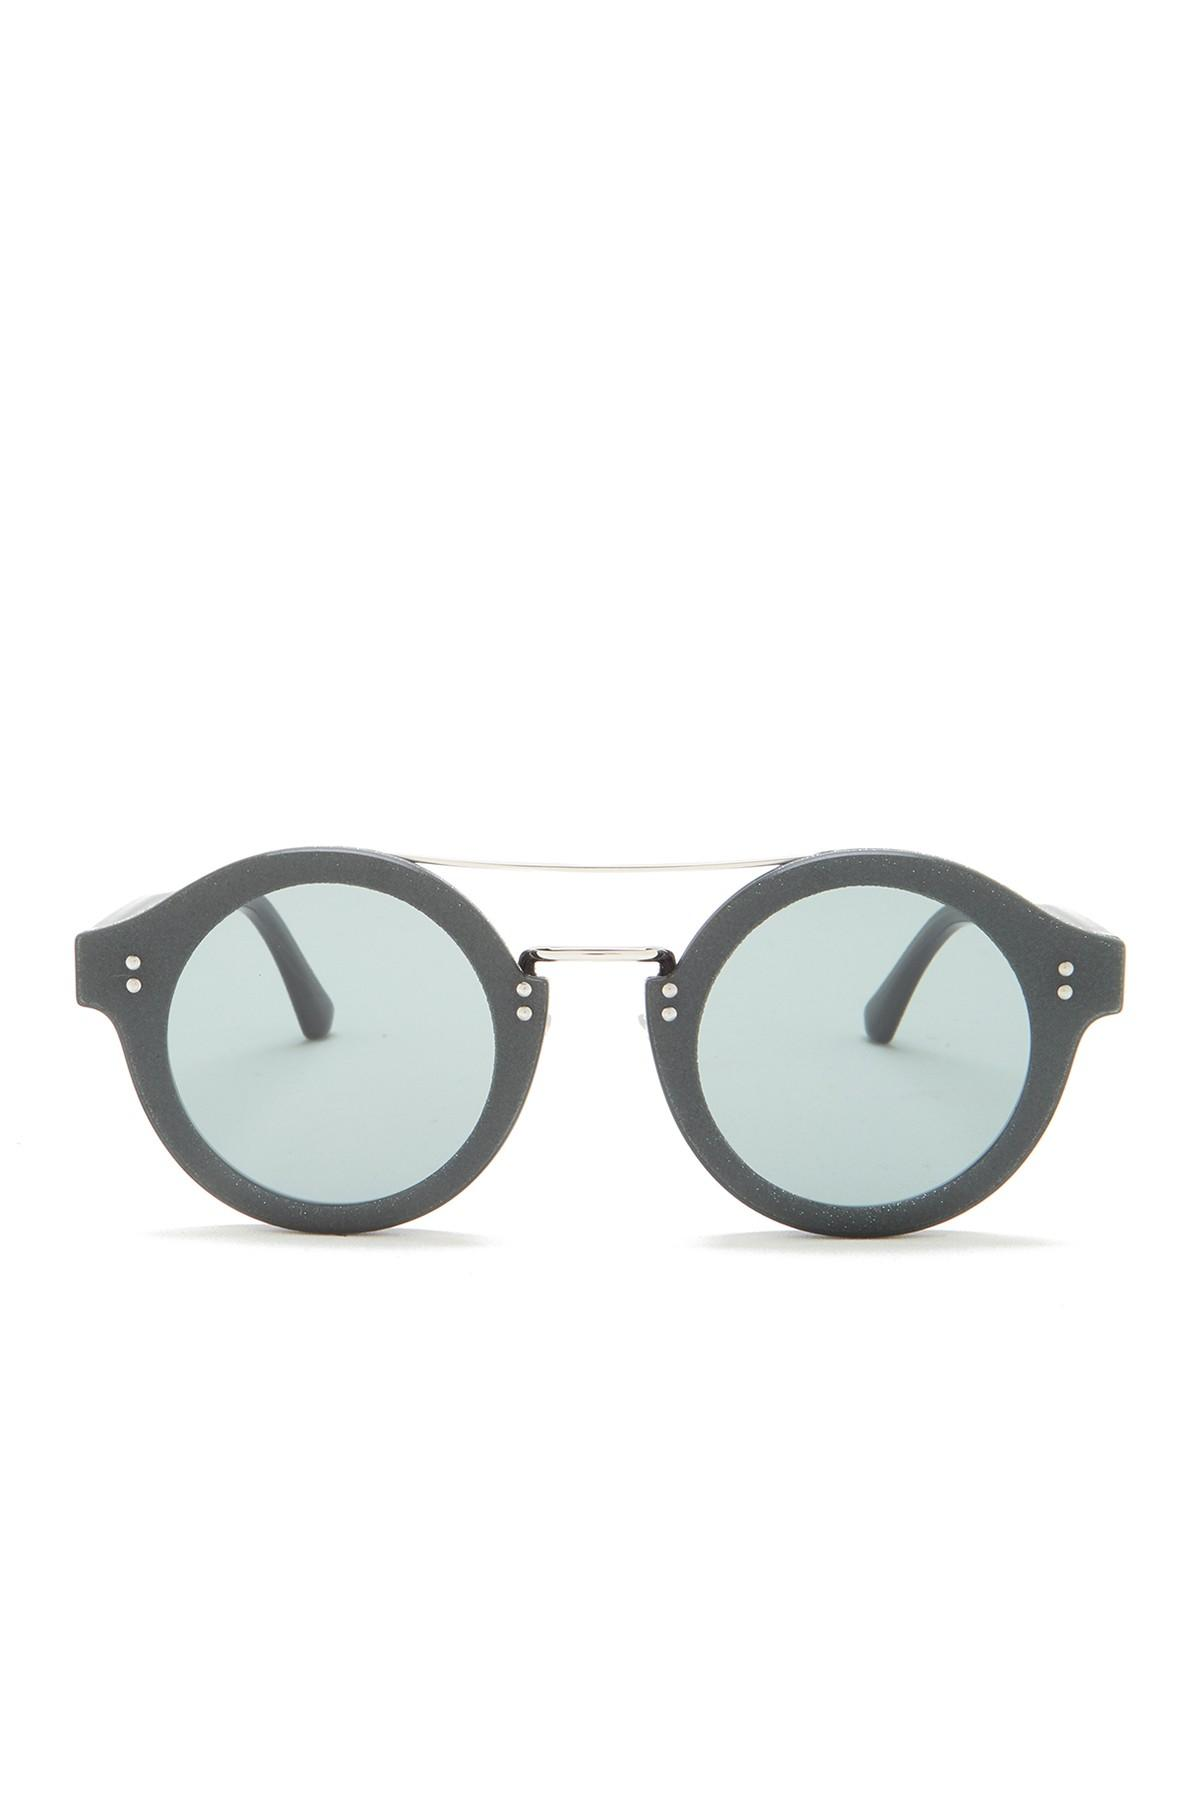 d6b186e8a2 Jimmy Choo - Multicolor Montie 64mm Round Aviator Sunglasses - Lyst. View  fullscreen